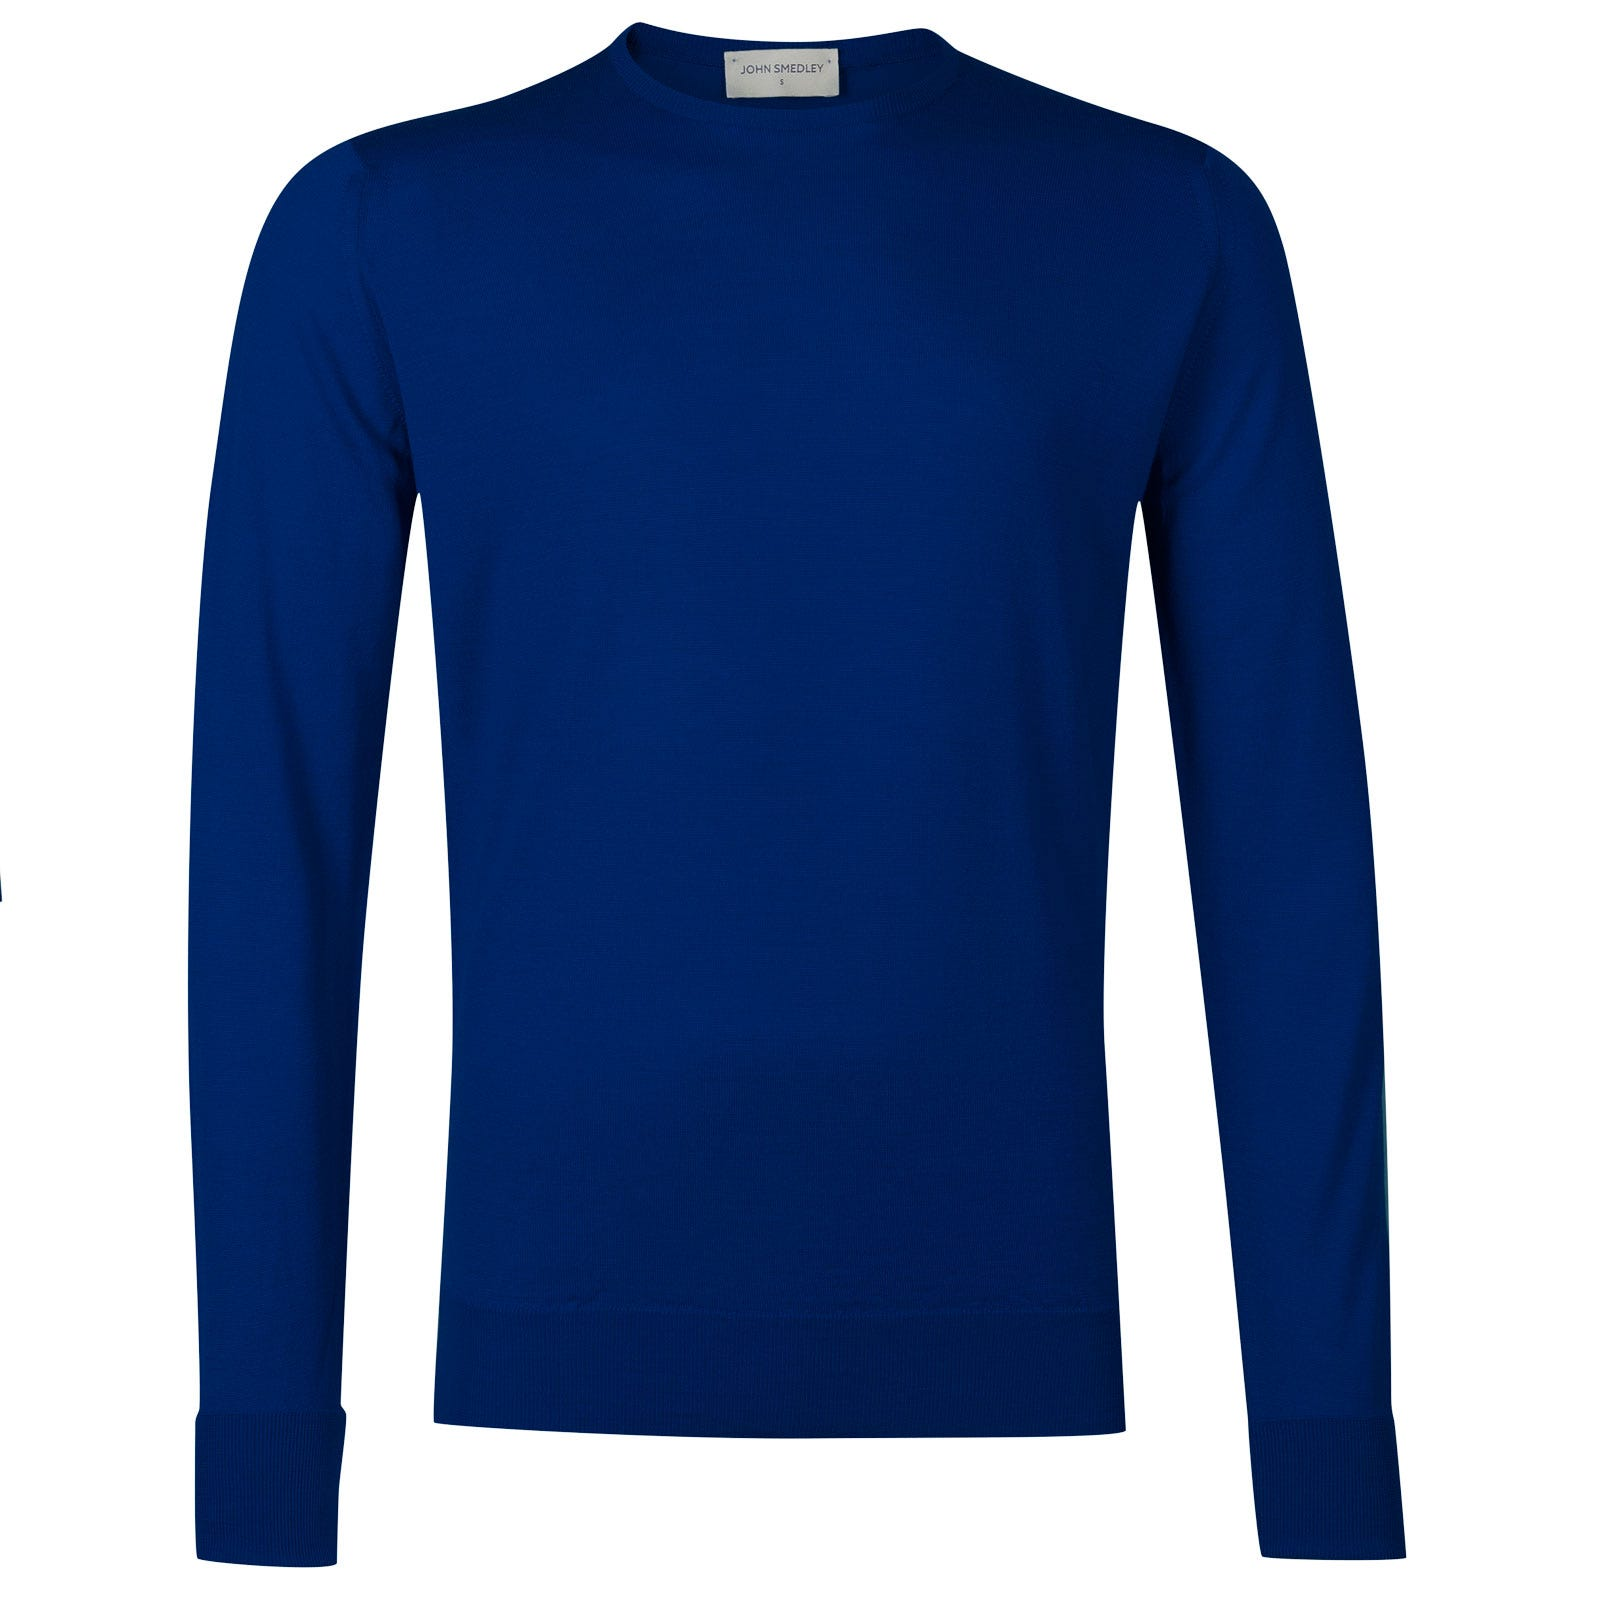 John Smedley marcus Merino Wool Pullover in Coniston Blue-S